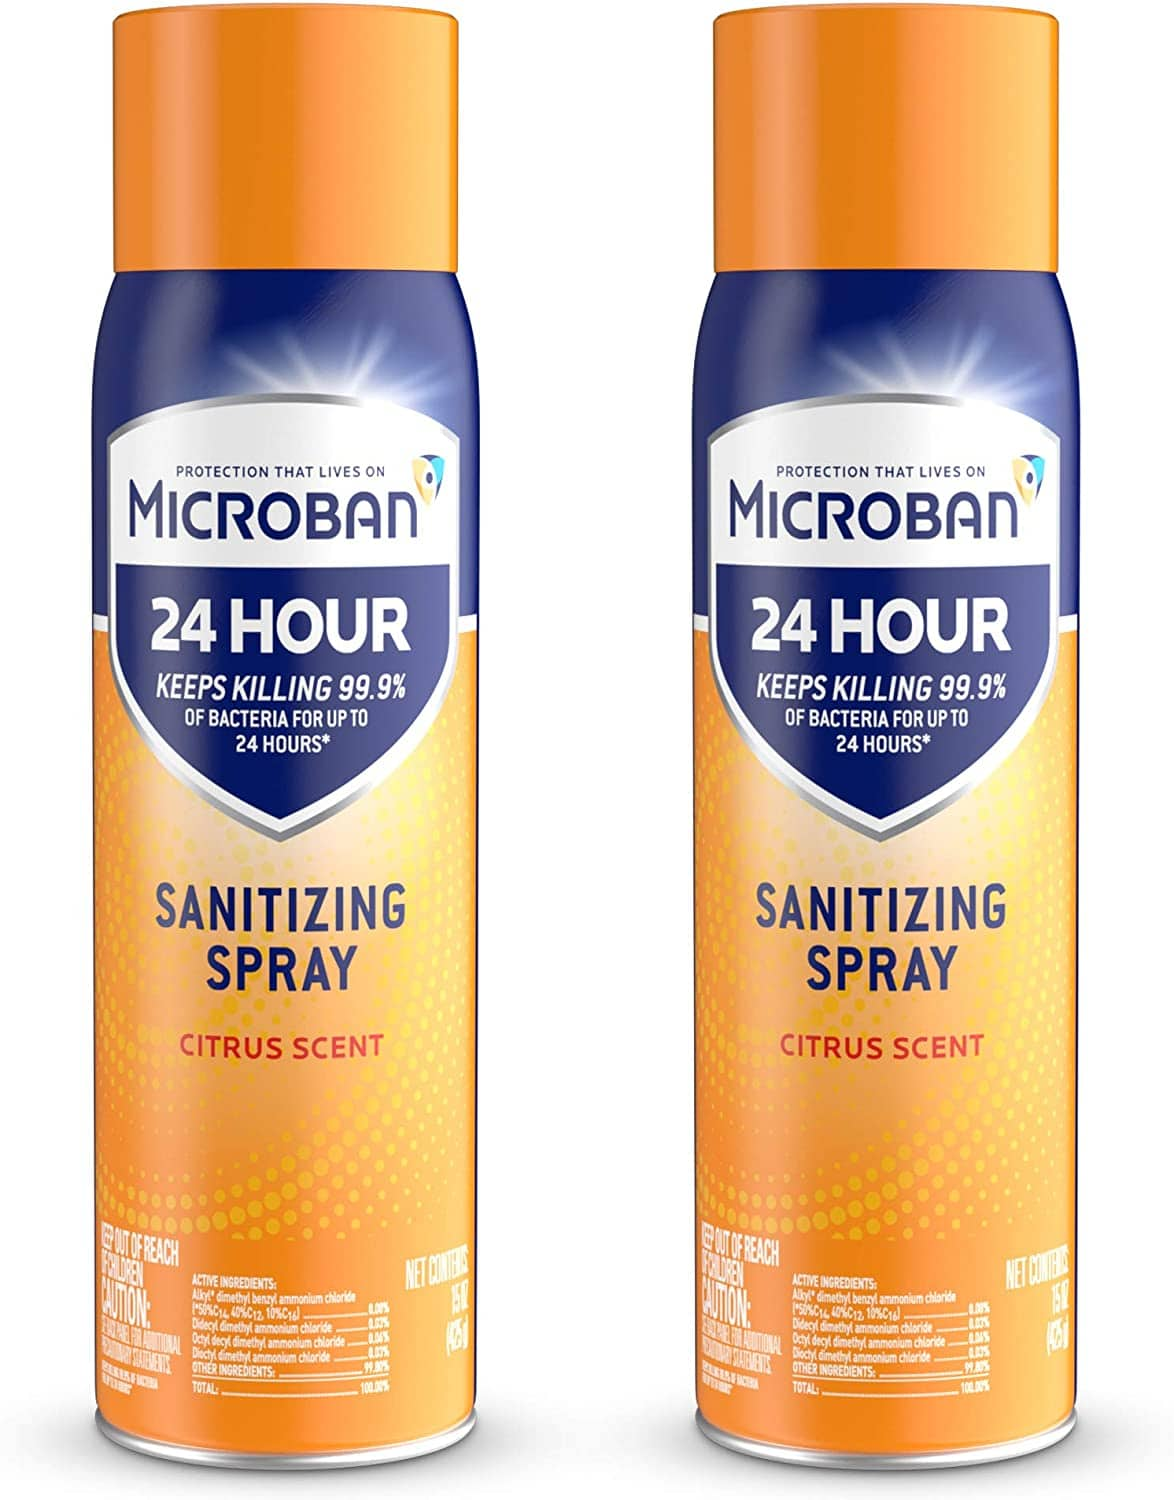 Microban 24 Hour Disinfectant Sanitizing Spray, Citrus Scent, 2 Count, 15 fl oz Each (Temporarily out of stock but able to order) $11.88